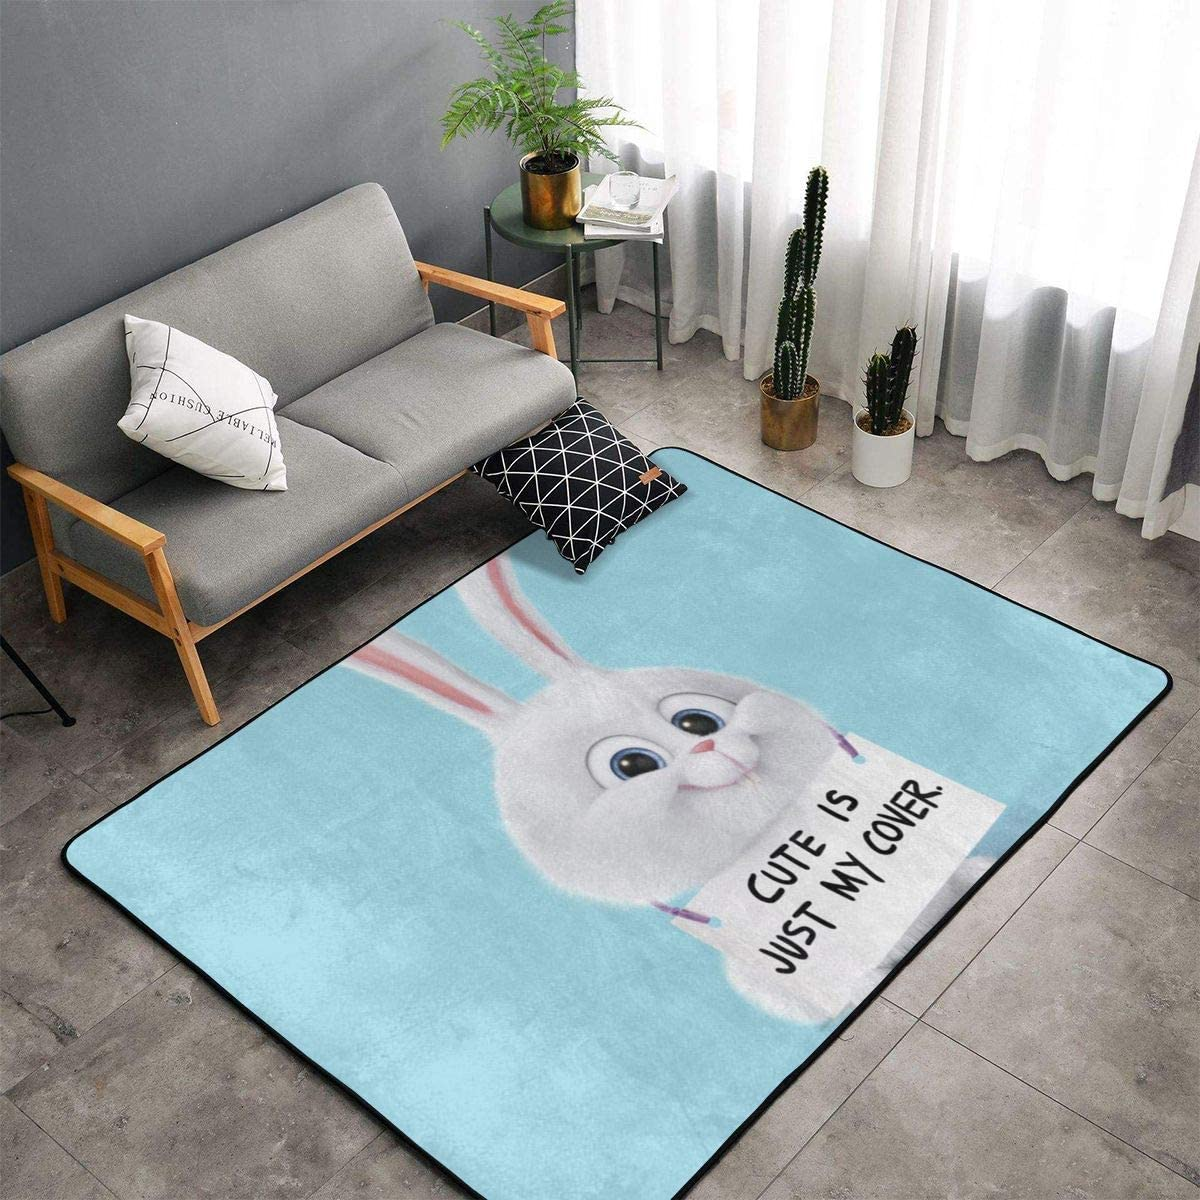 Snowball The Secret Life of Pets Free shipping on posting reviews Carpet Mat Camping Area New product! New type Bedroom